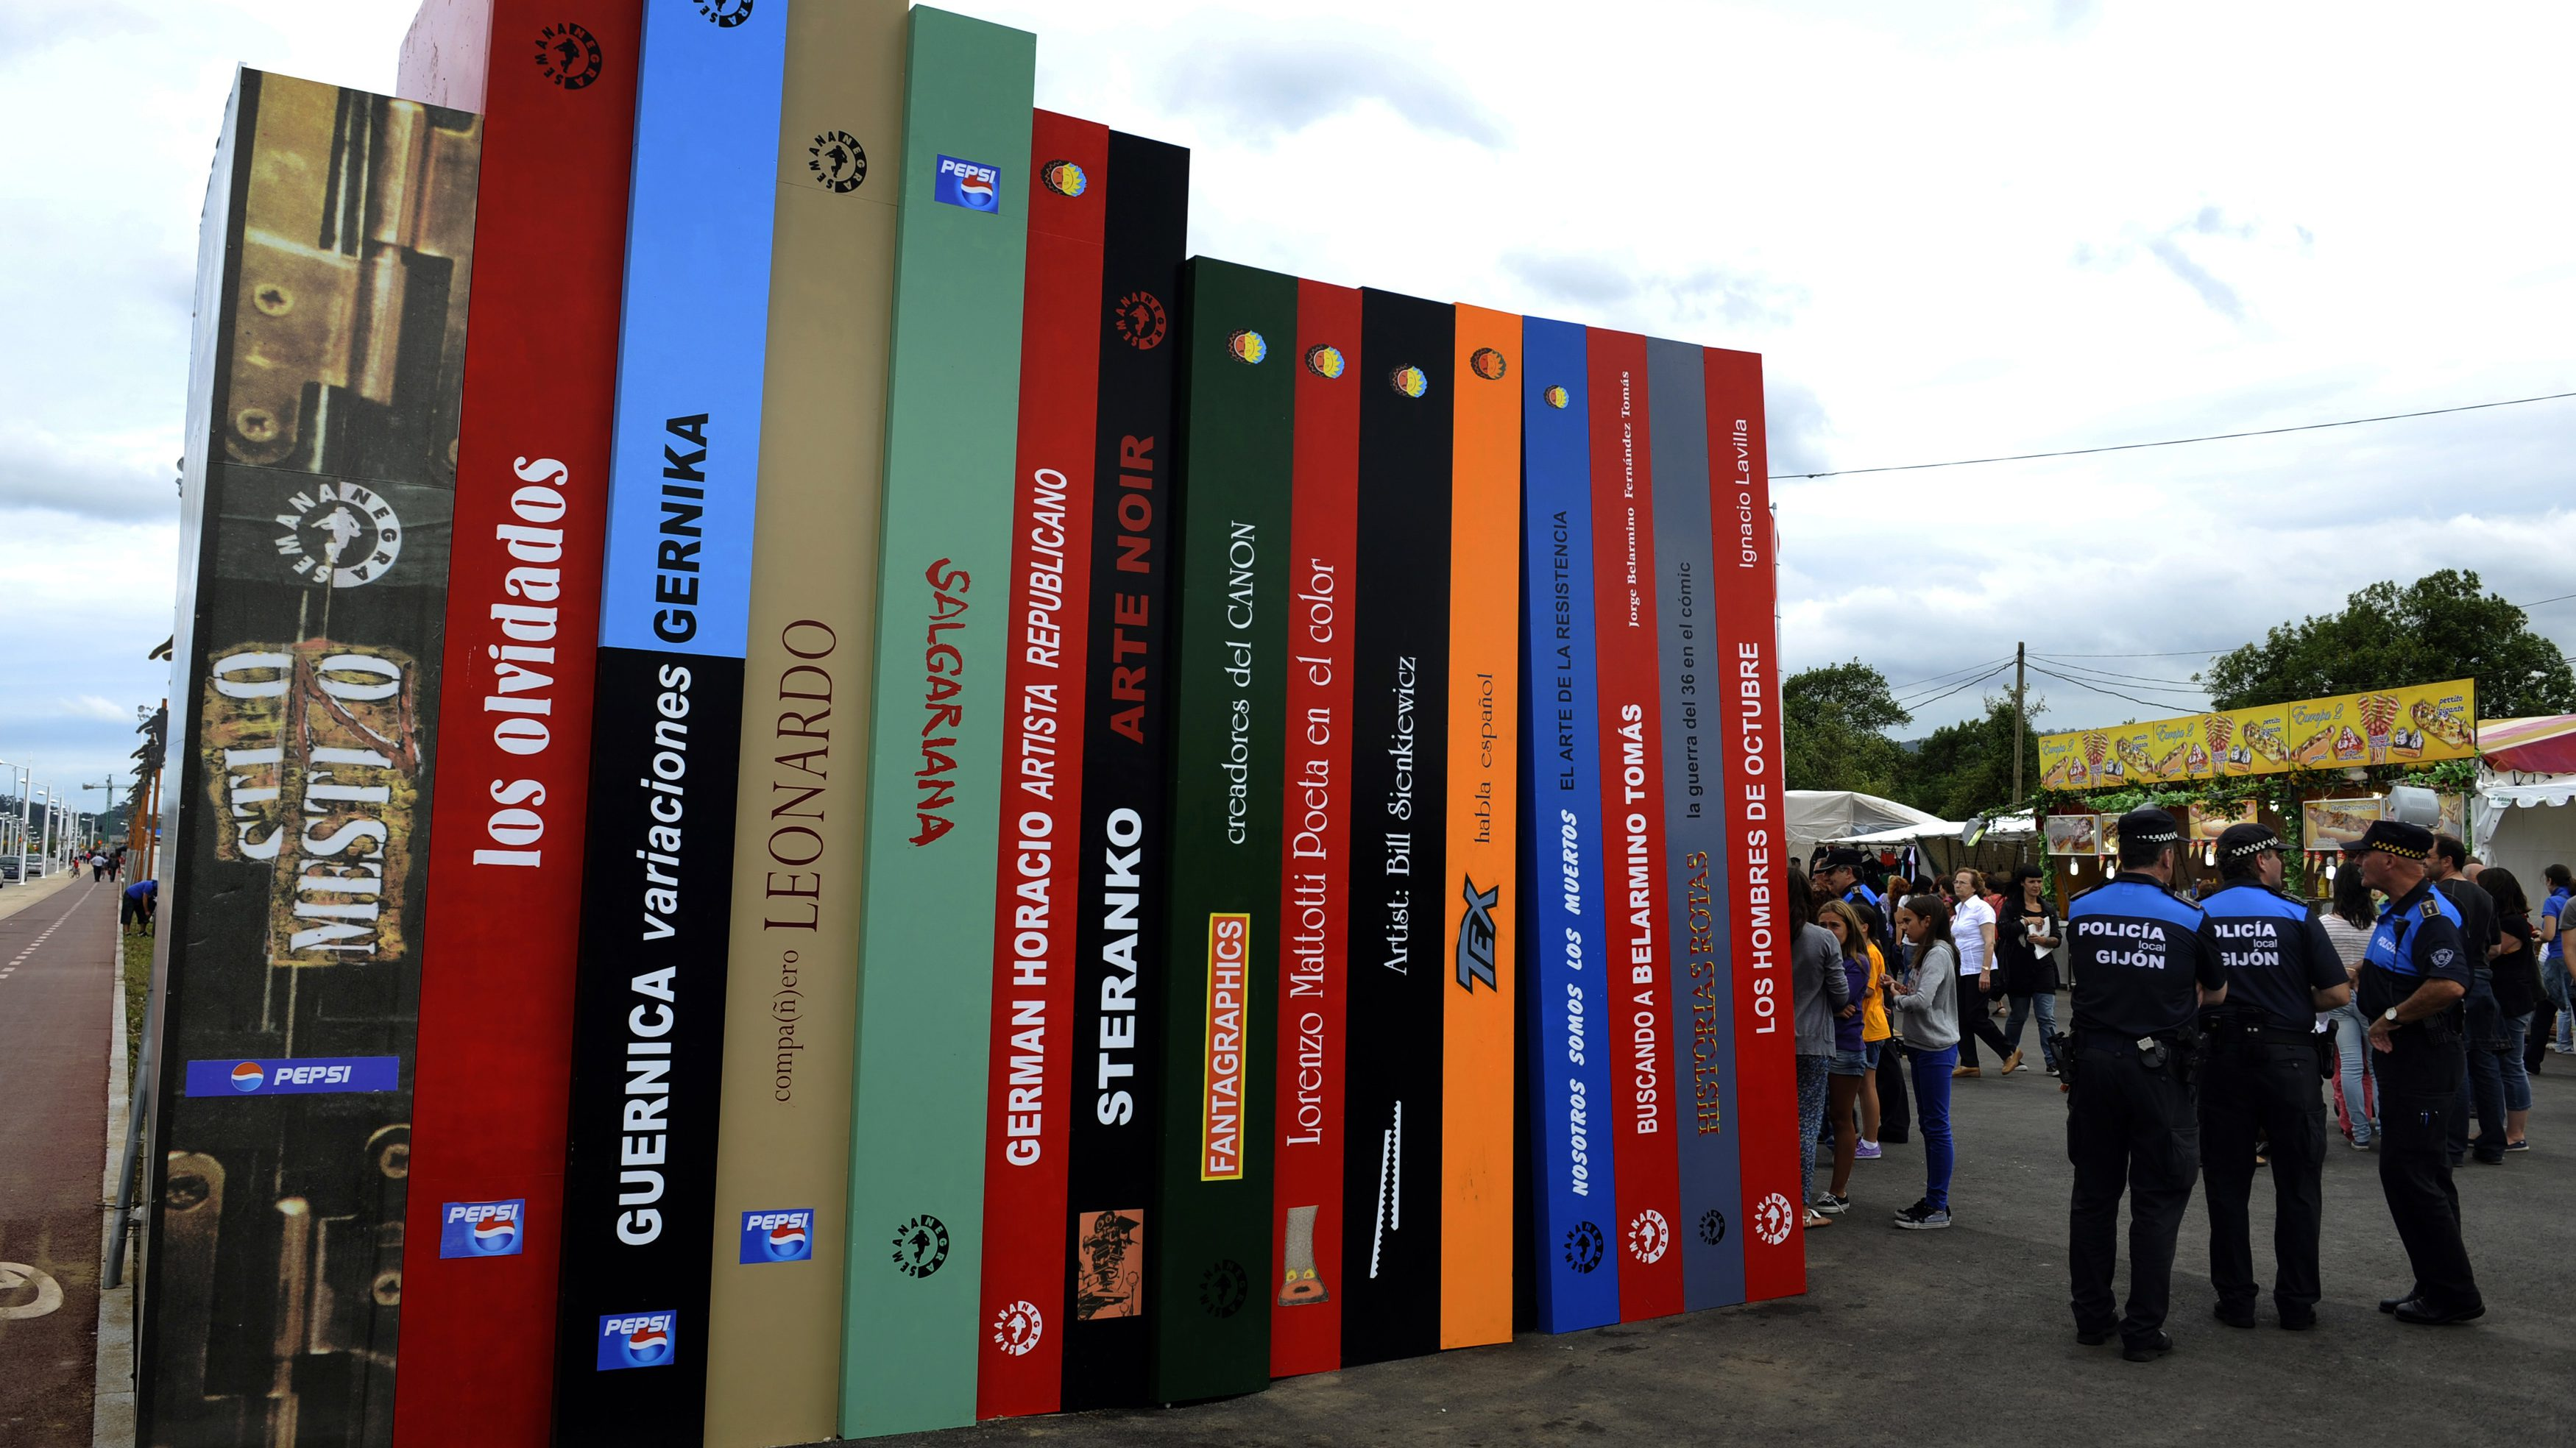 """Big cardboard books welcome visitors at the entrance of the XXIV Semana Negra (Noir Week) book fair in the northern Spanish town of Gijon July 25, 2011. One of Europe's biggest literary festivals convenes for the 24th time in Spain until next July 31st in its annual bid to convince all comers that books are fun by mixing literary events with a fun fair. A million people a year visit ferris wheels and merry-go-rounds at the week-long """"Semana Negra"""", but they also buy 50,000 books and rub shoulders with scores of writers from Europe, Latin America and North America. As well as readings and book launches, the Semana Negra also stages concerts, a photo-journalism exhibition and awards prizes for poetry, crime writing, science fiction, reporting, historical and fantasy novels."""